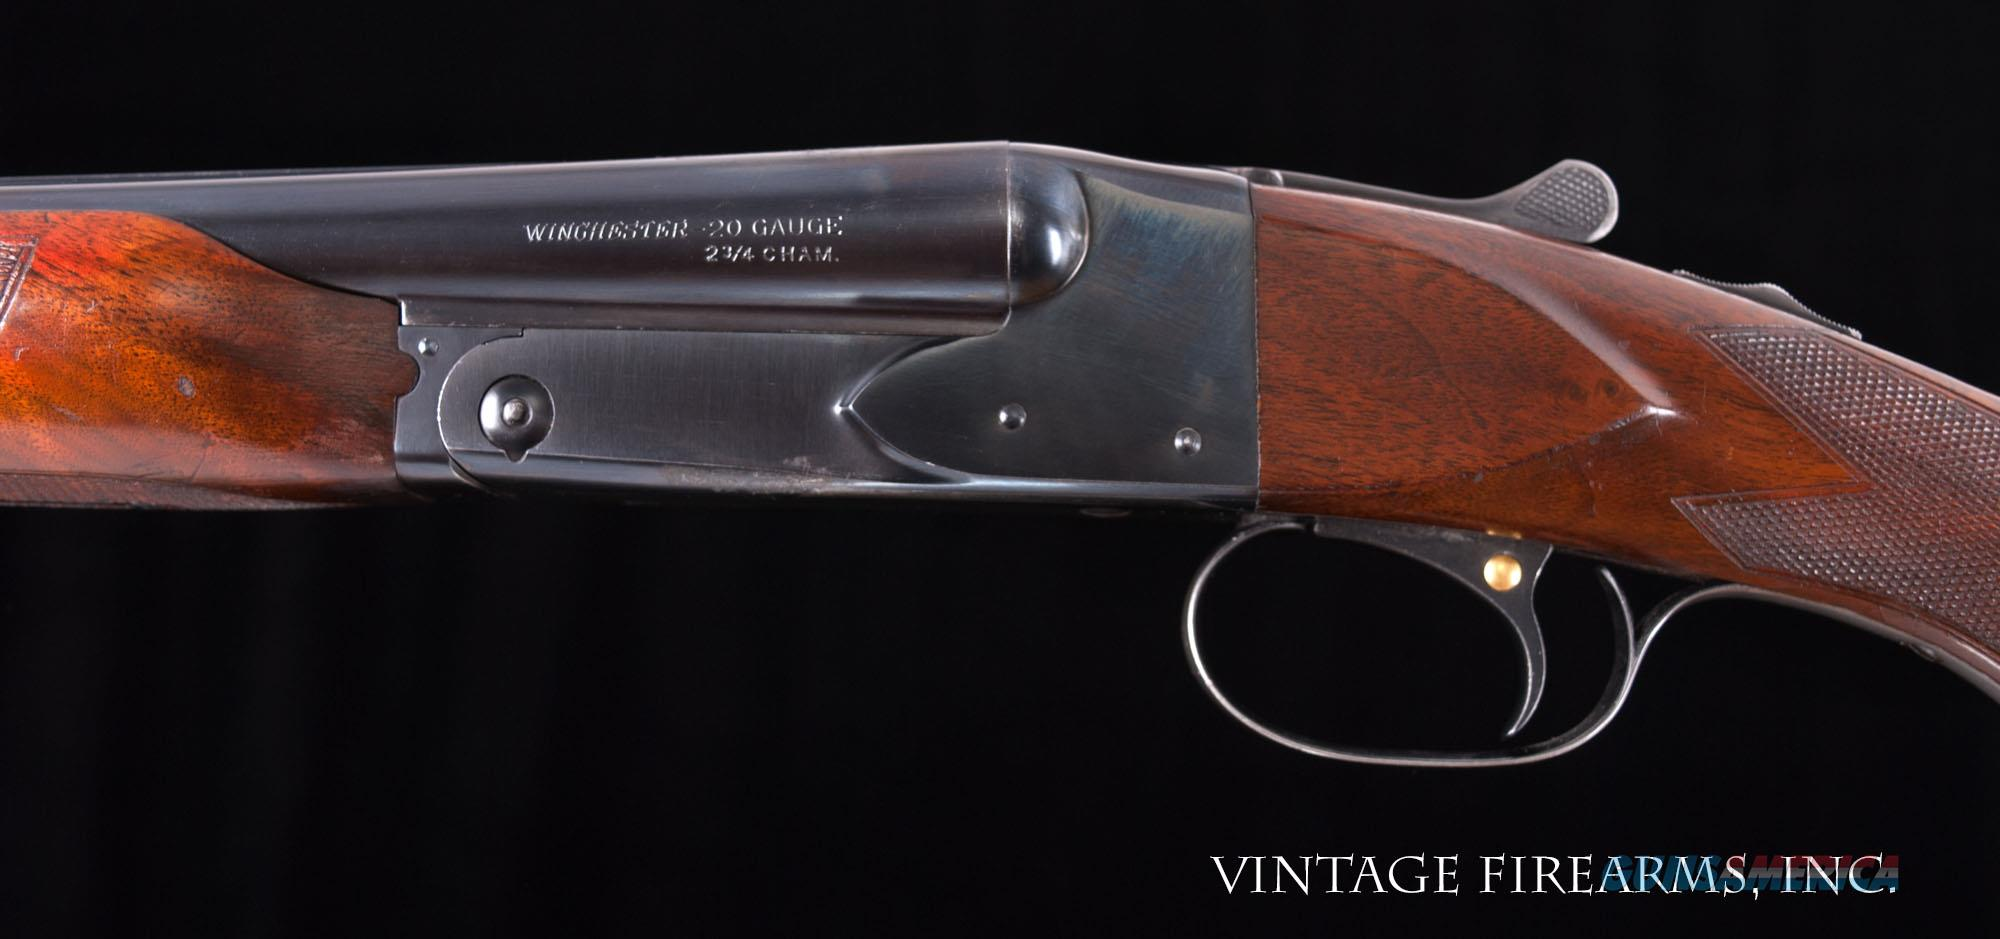 Winchester Model 21 20 Gauge – FACTORY ORIGINAL LOTS OF CONDITION, CODY LETTER  Guns > Shotguns > Winchester Shotguns - Modern > SxS